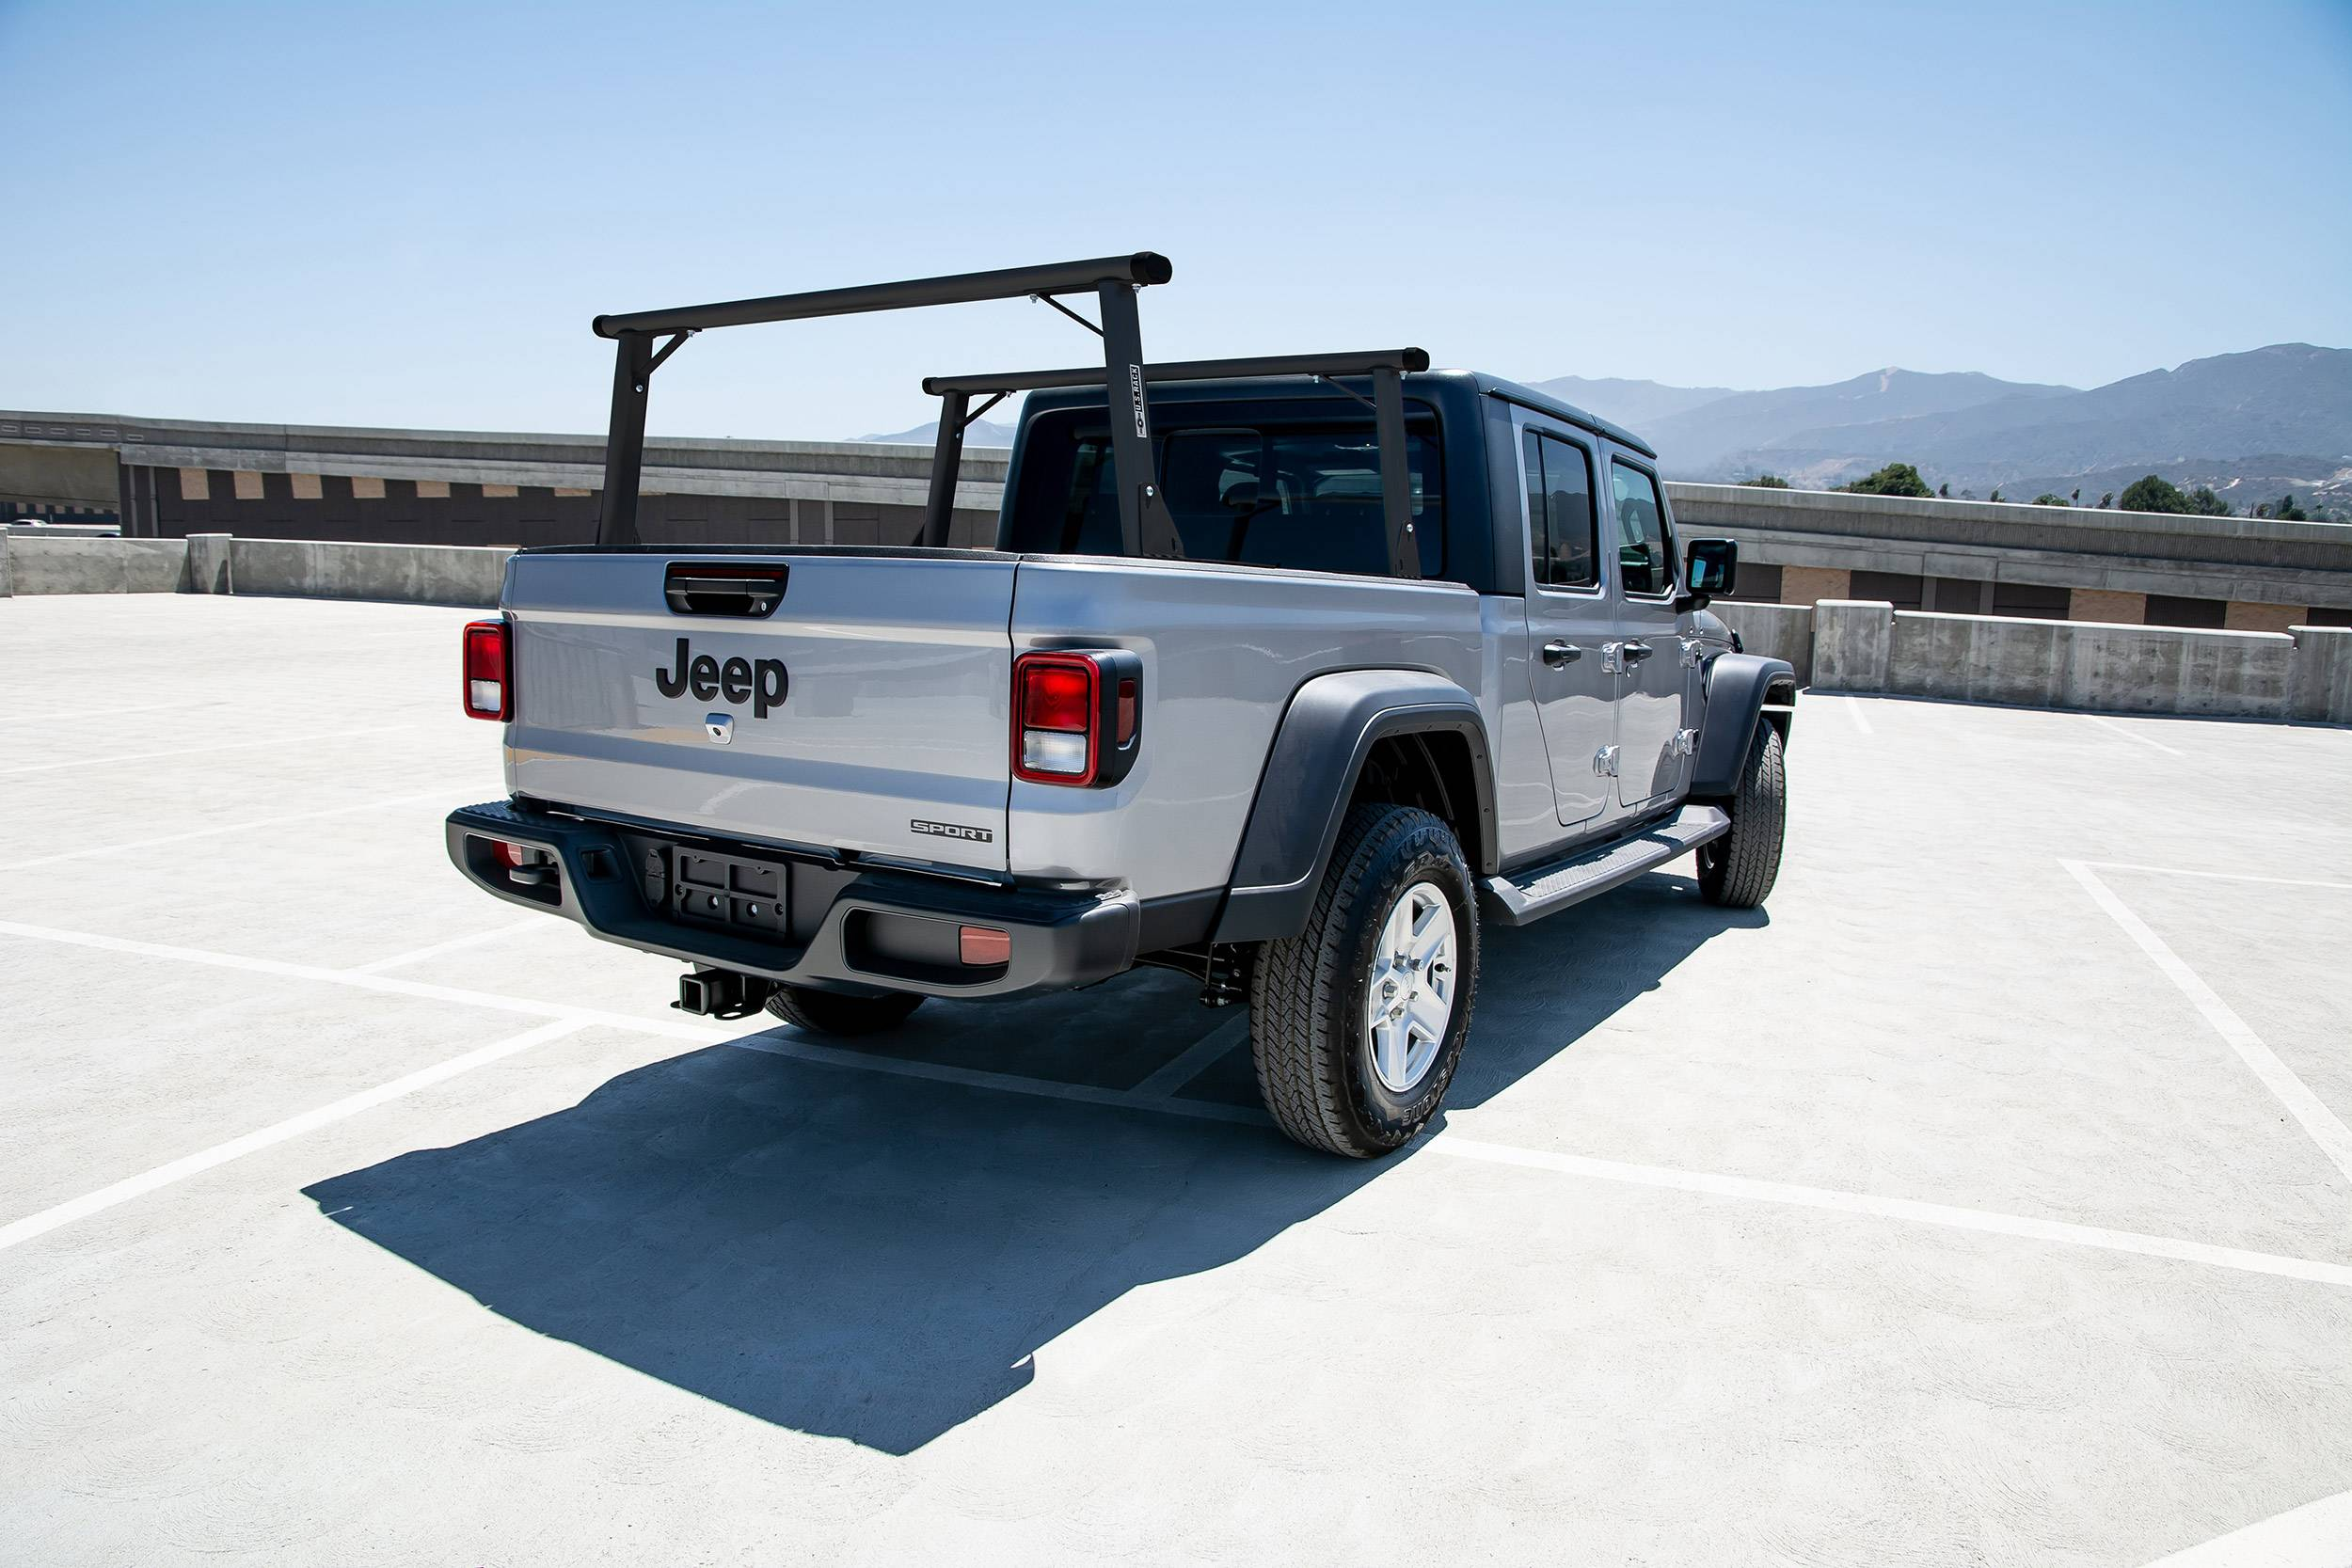 2020 Jeep Gladiator Clipper Truck Rack, Fleetside, Track System, Cab Height, All Black Cross Bar, Legs and Base - PN #82240251